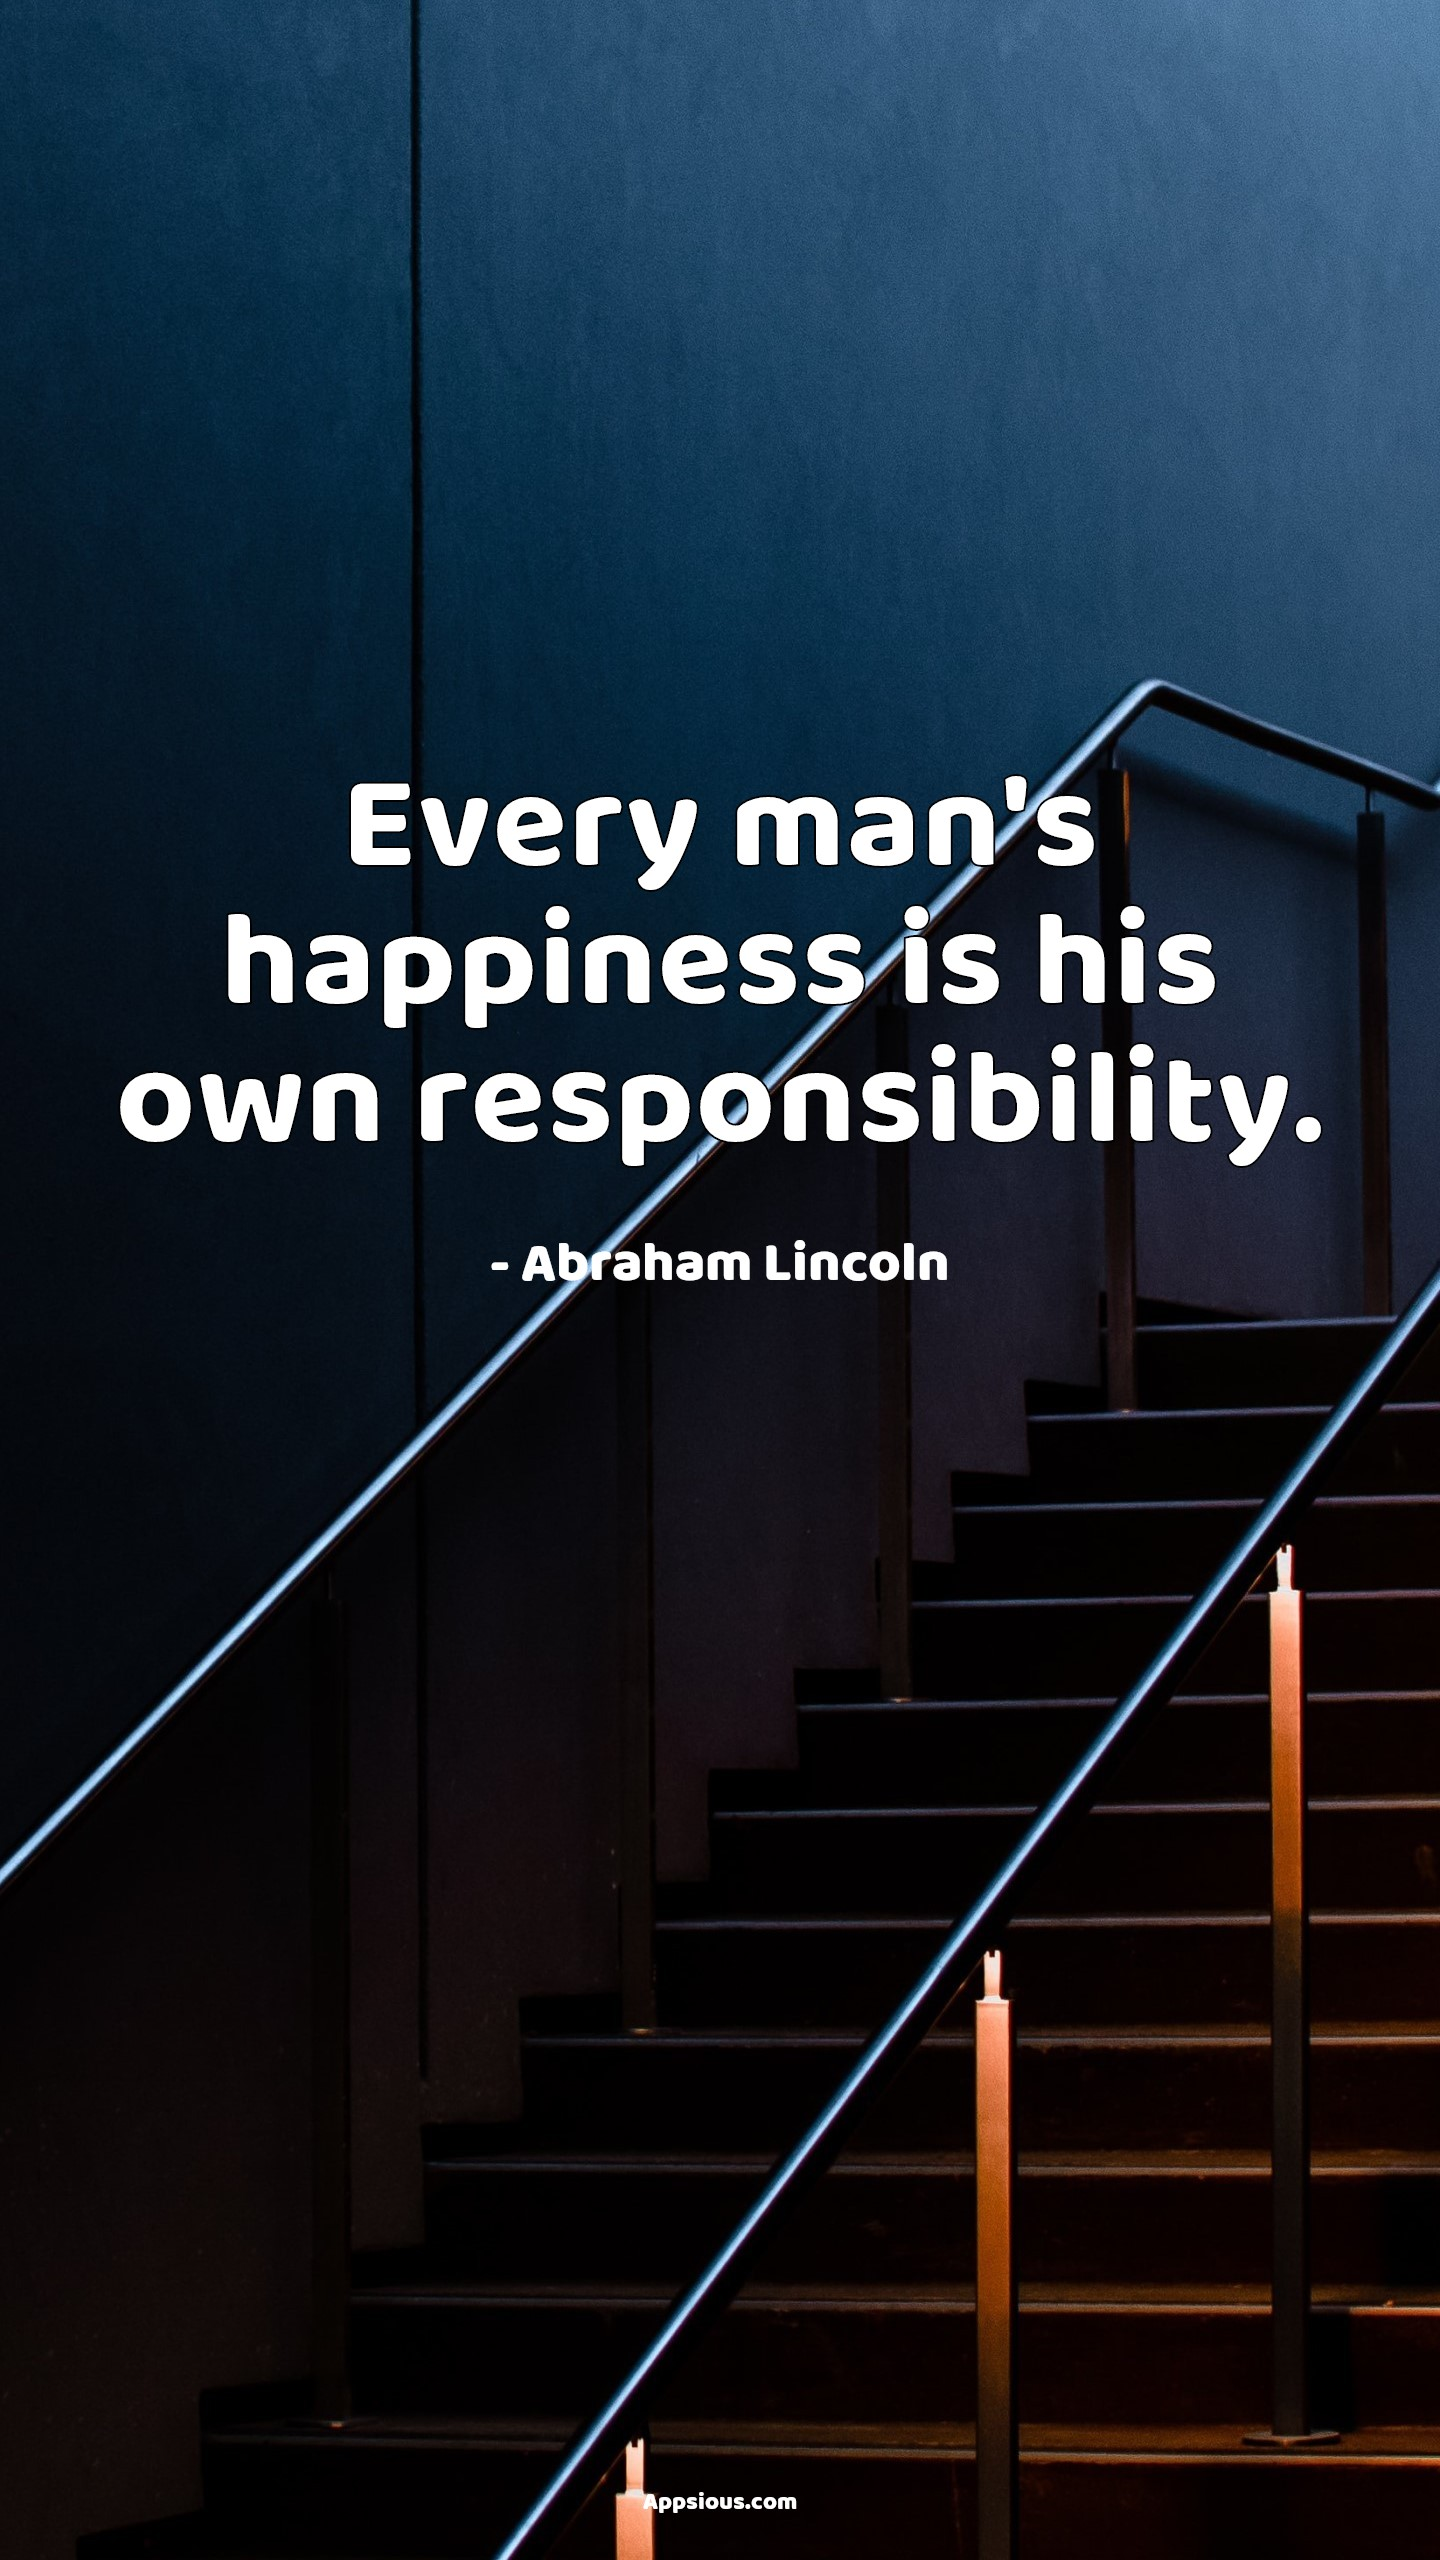 Every man's happiness is his own responsibility.